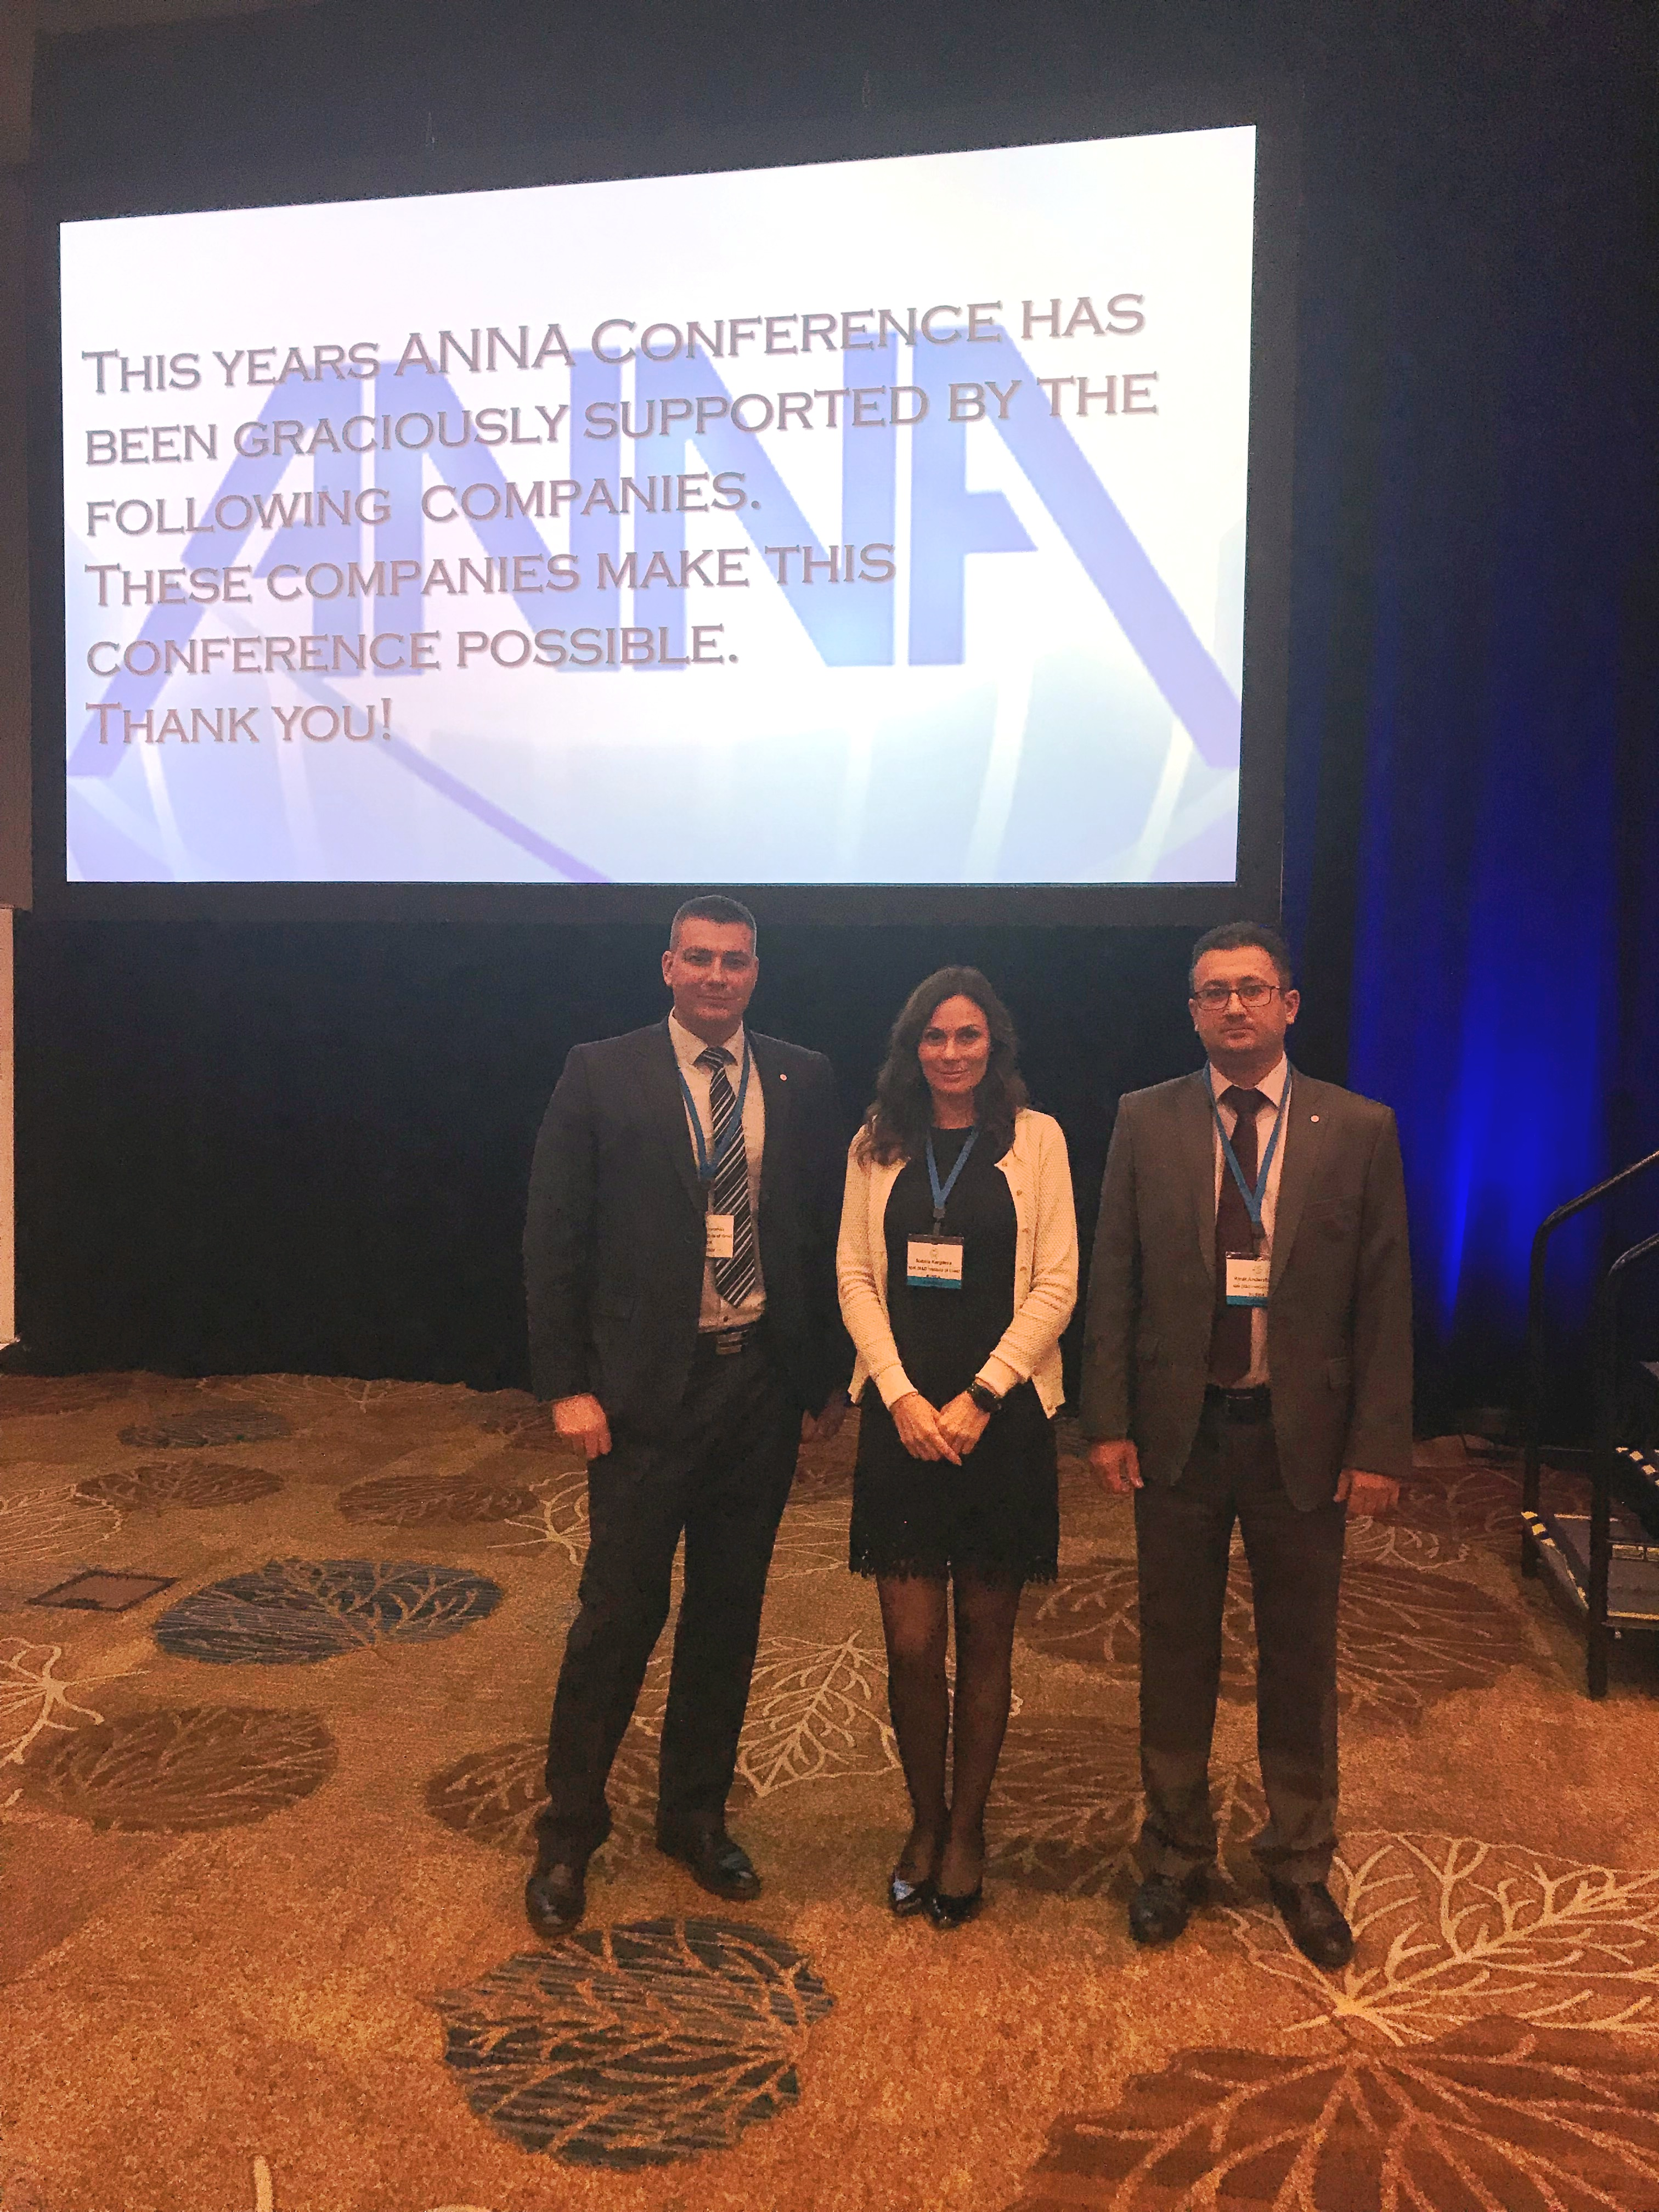 NIIK's delegation attended ANNA conference specified in Nitric acid and Ammonium nitrate.